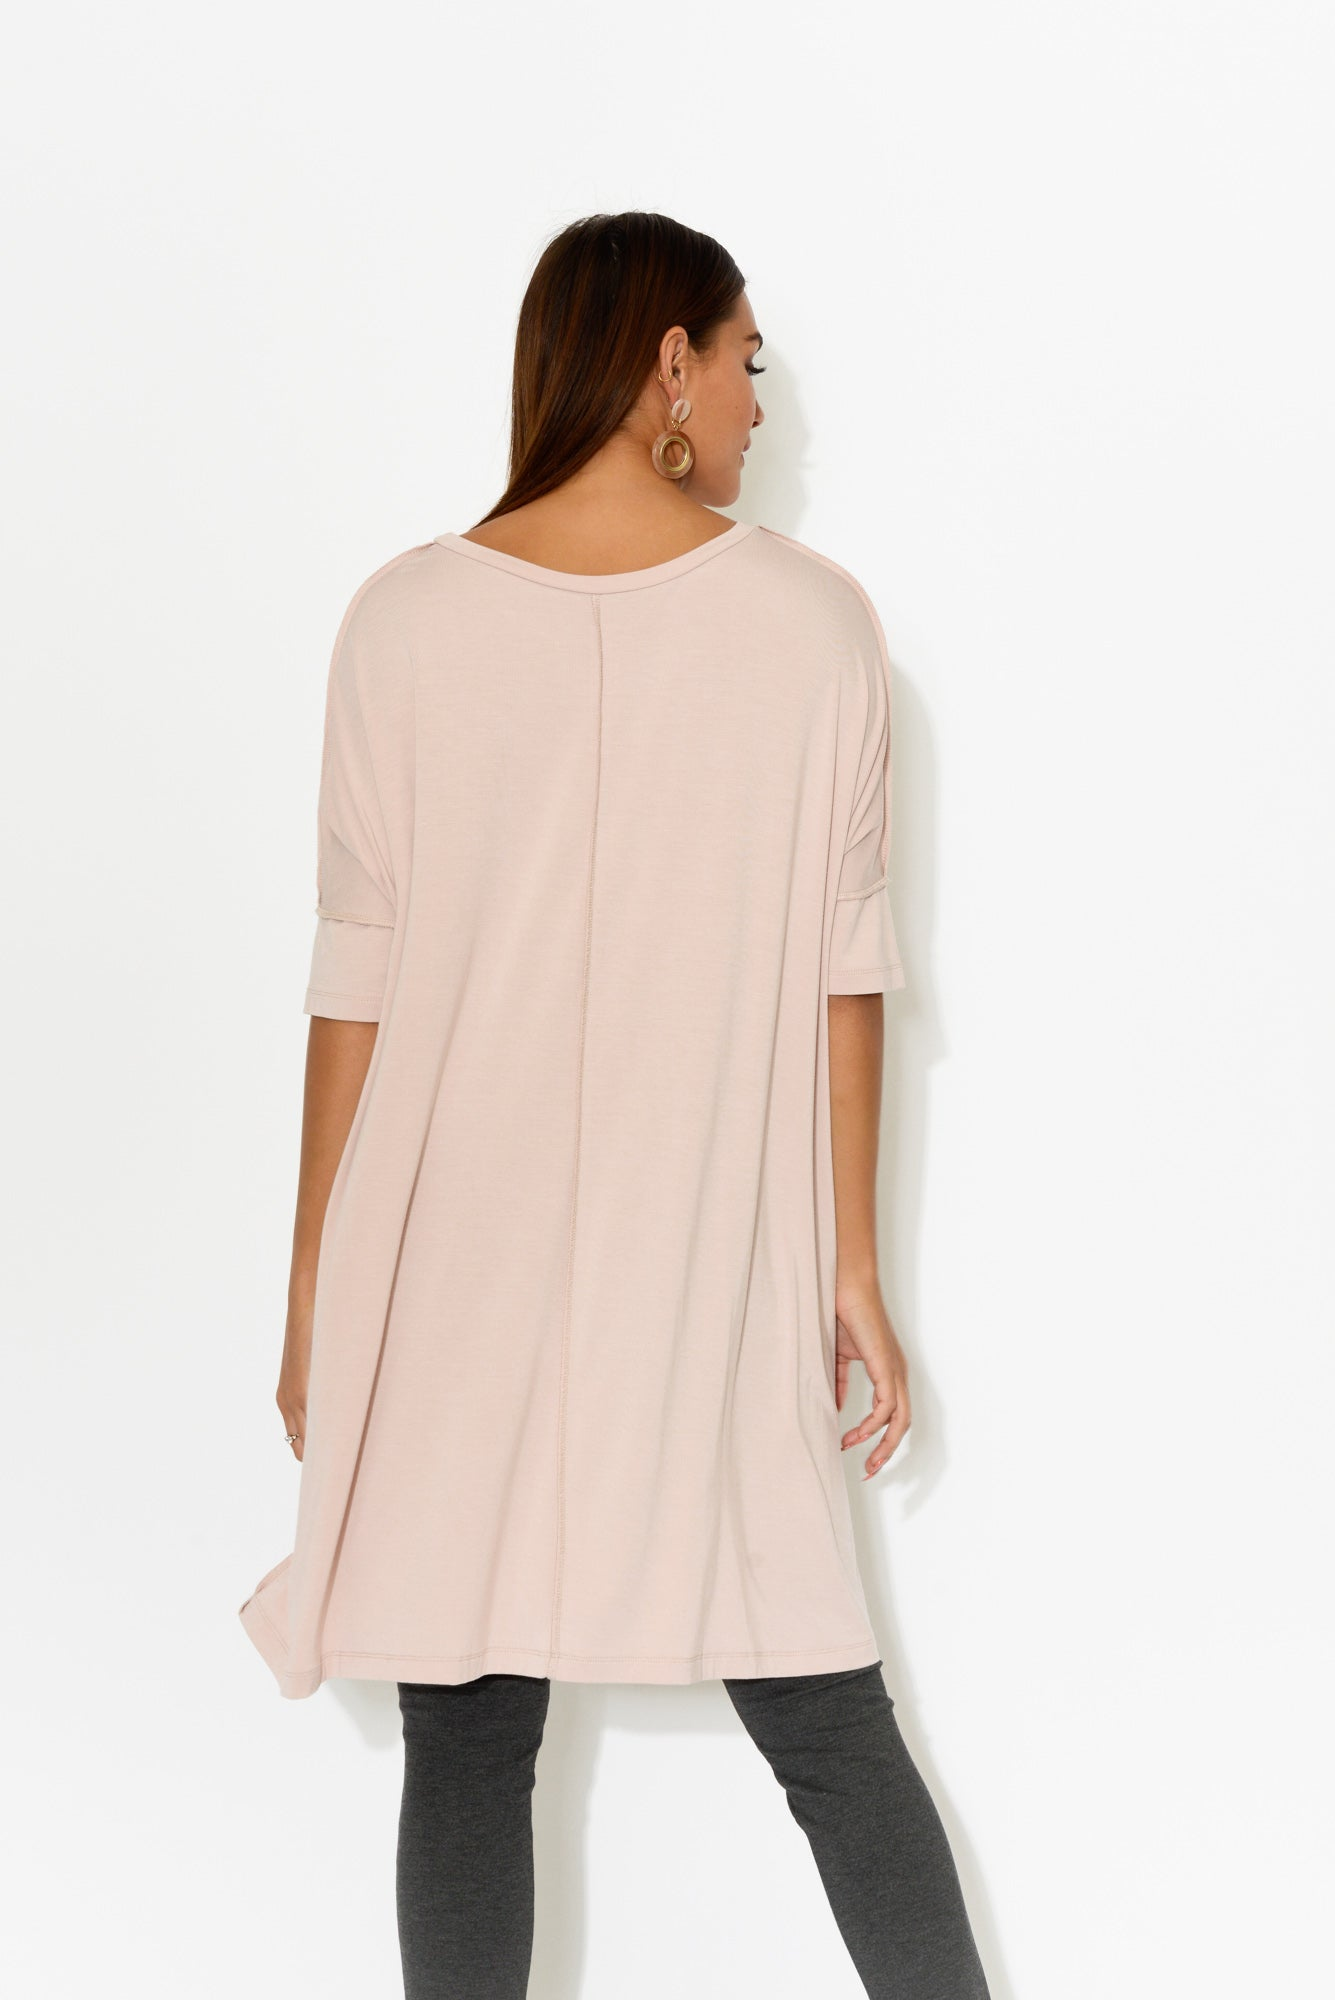 Blush Bamboo Exposed Seam Top - Blue Bungalow